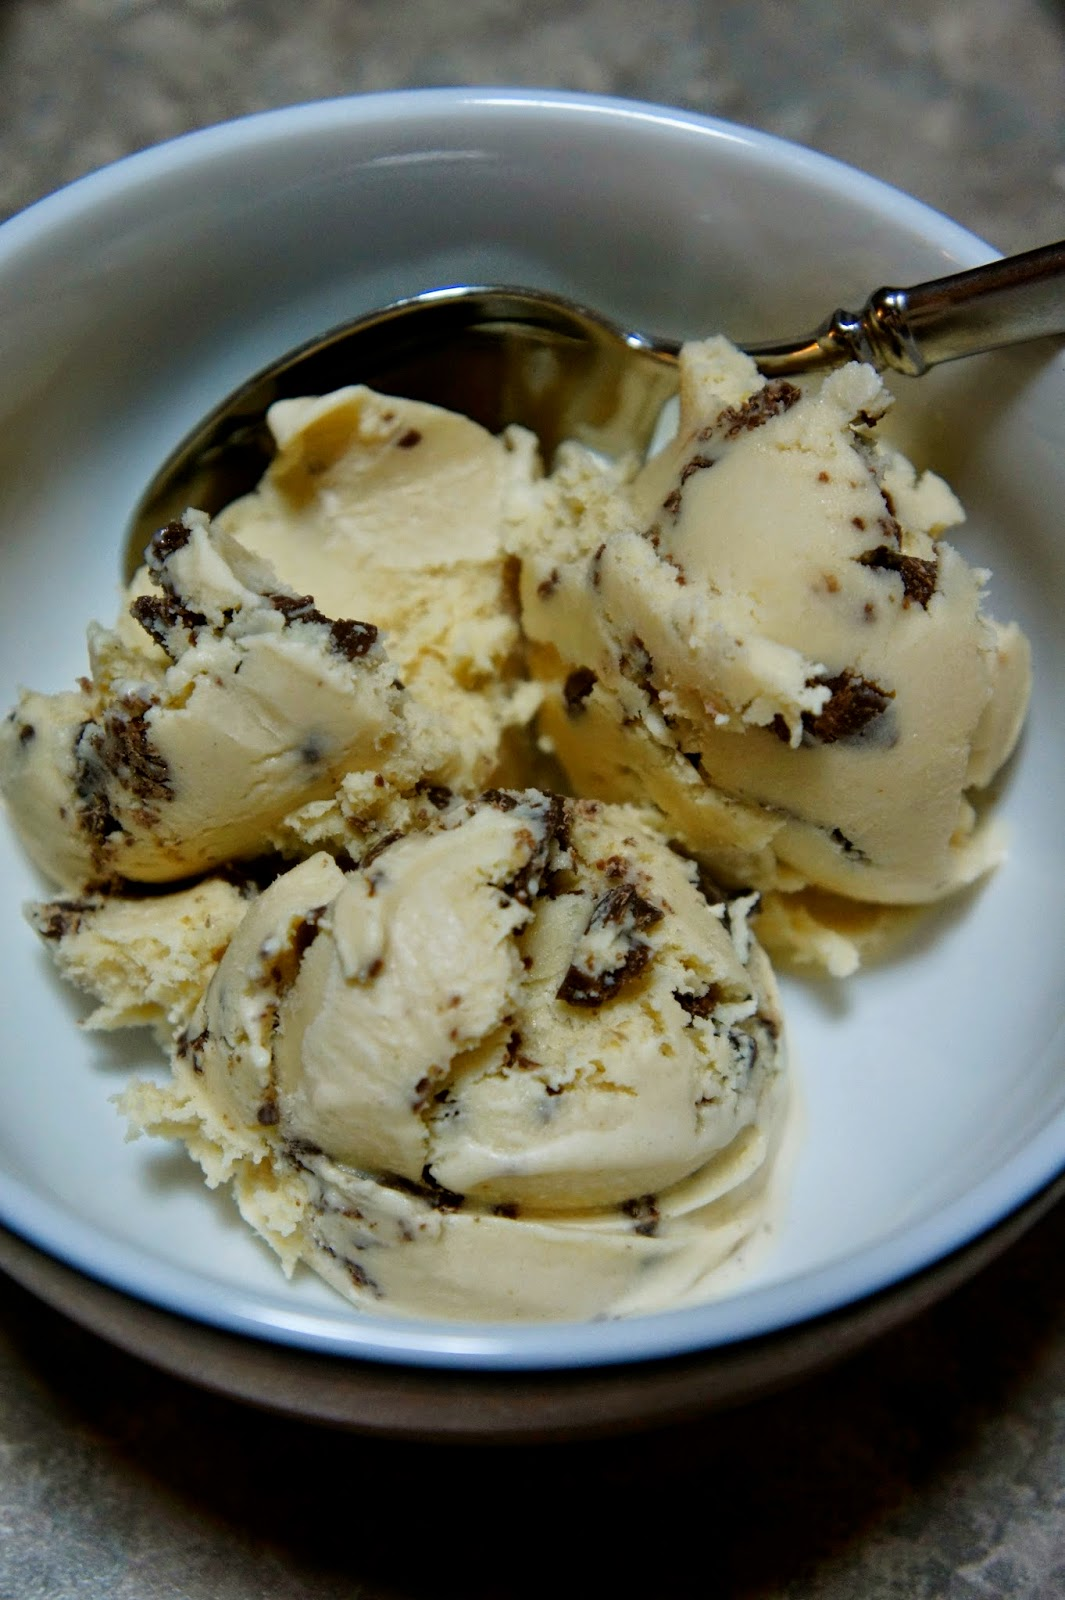 Buckeye Ice Cream: Savory Sweet and Satisfying